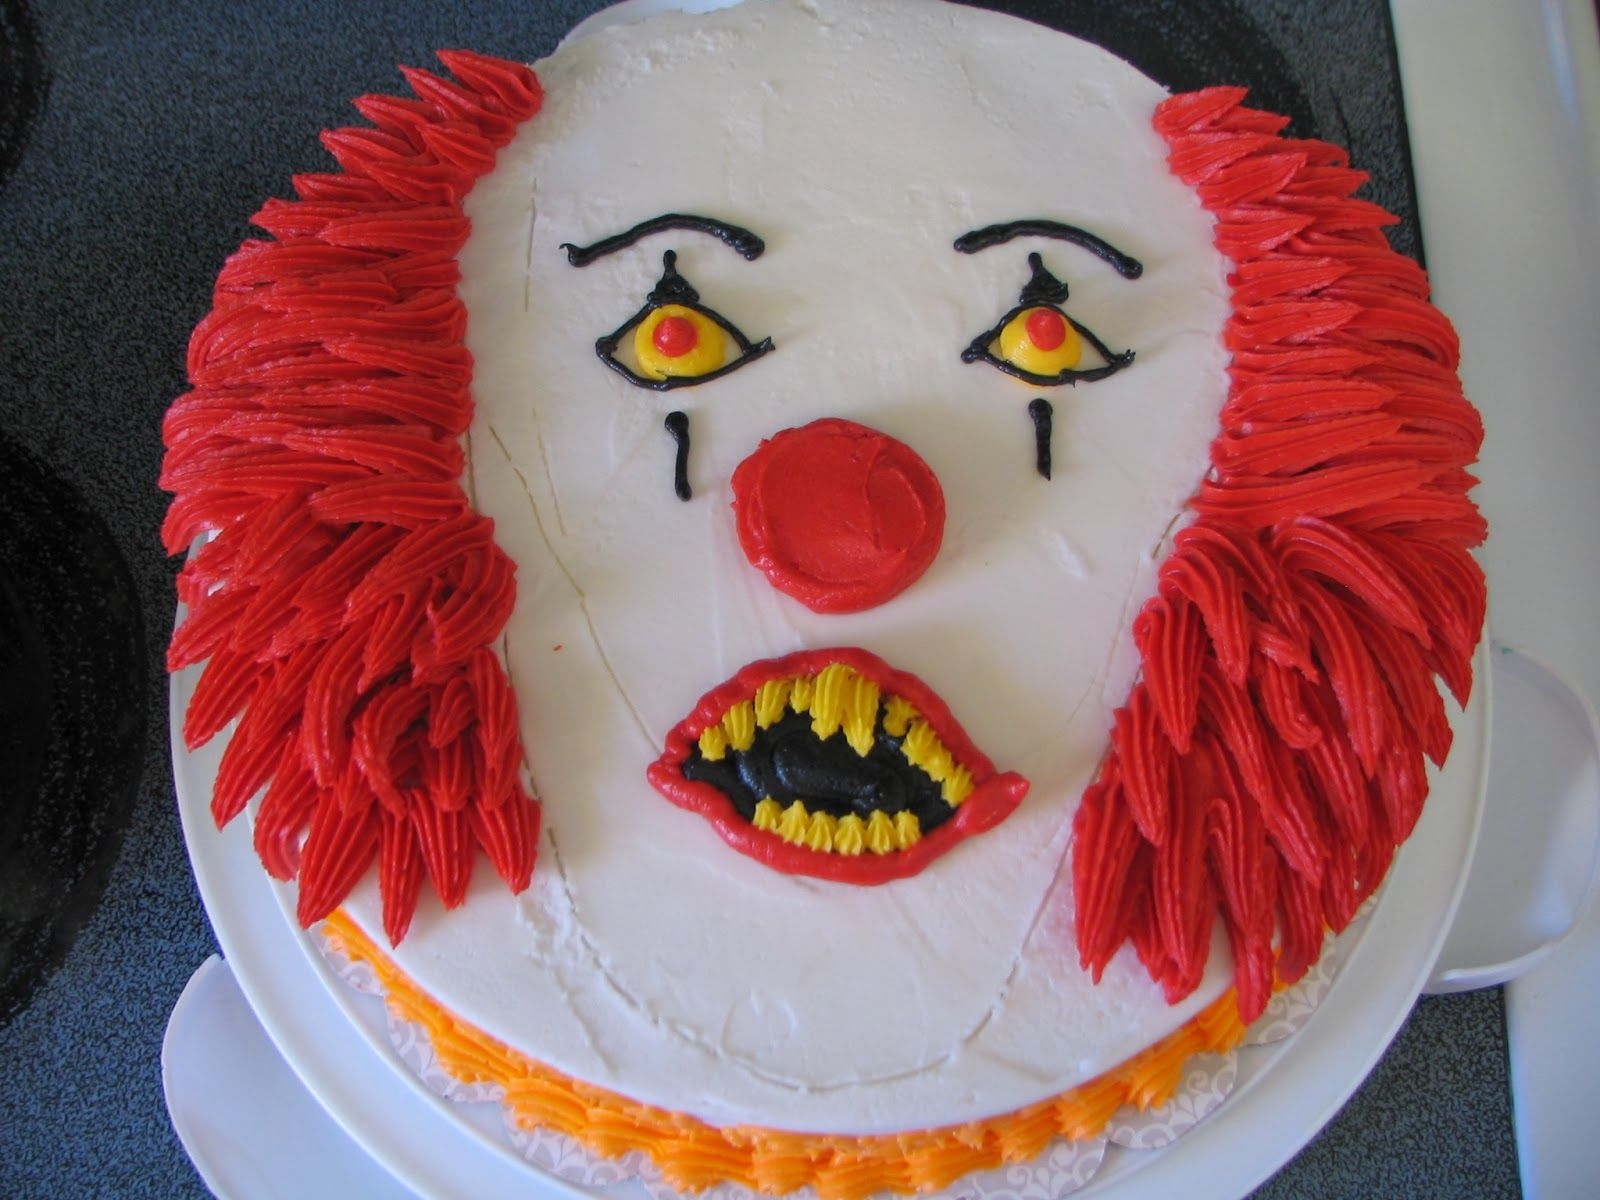 Scary clown cake Pennywise Piped Dreams Pinterest Clown cake